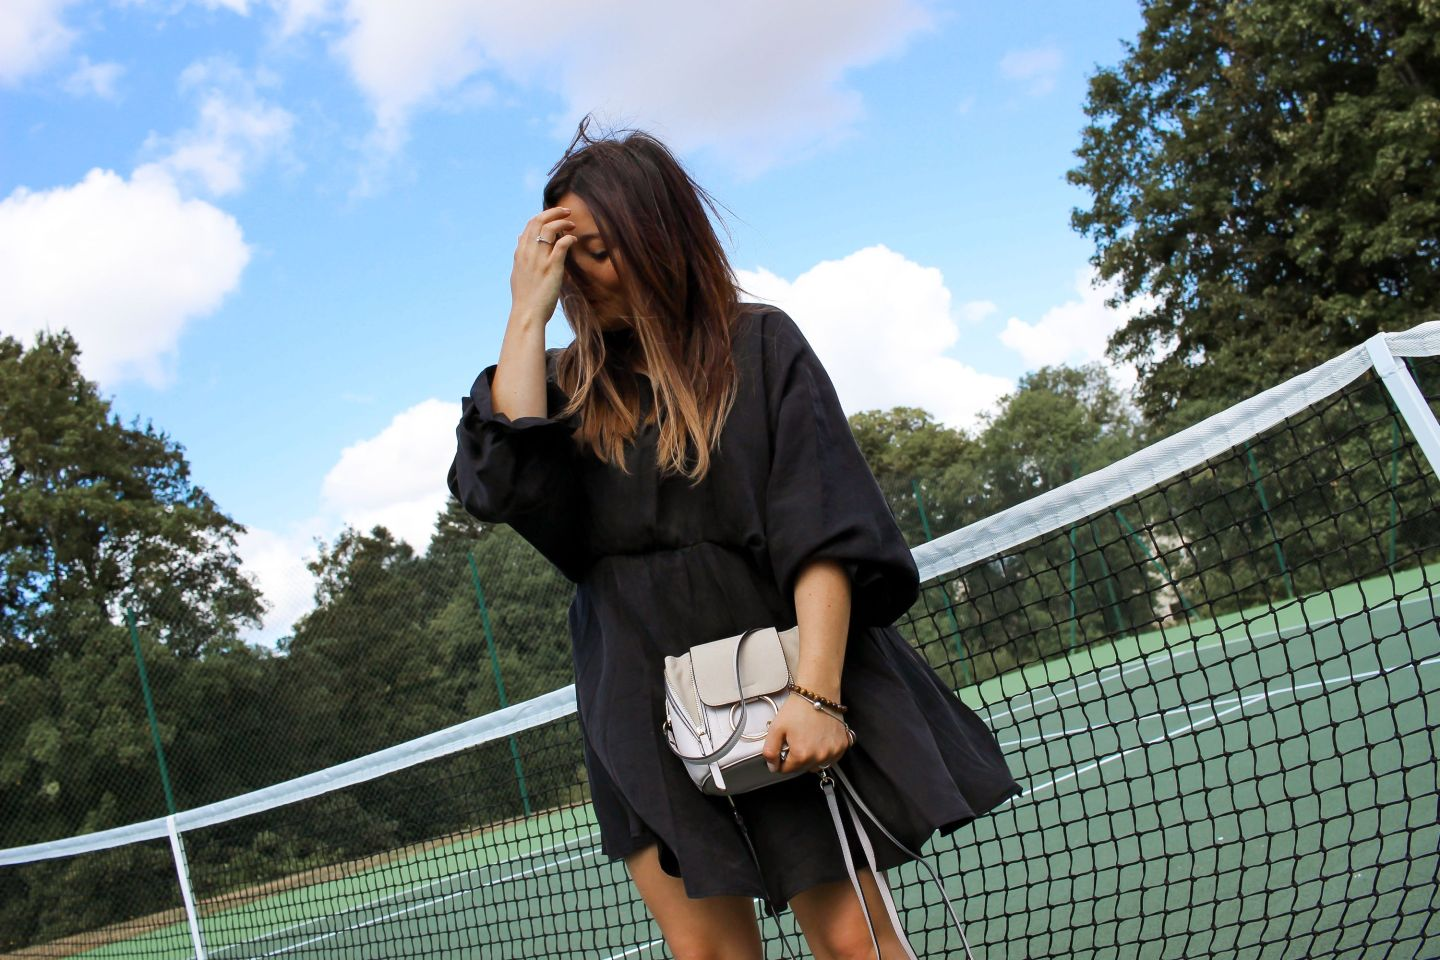 zara, robe noire, zadig & voltaire, blogger, fashion blogger, robe noire zara, nastygal, the green ananas, chloé, tendances modes, journaliste mode, bottines clous, mango, the perfect little black dress